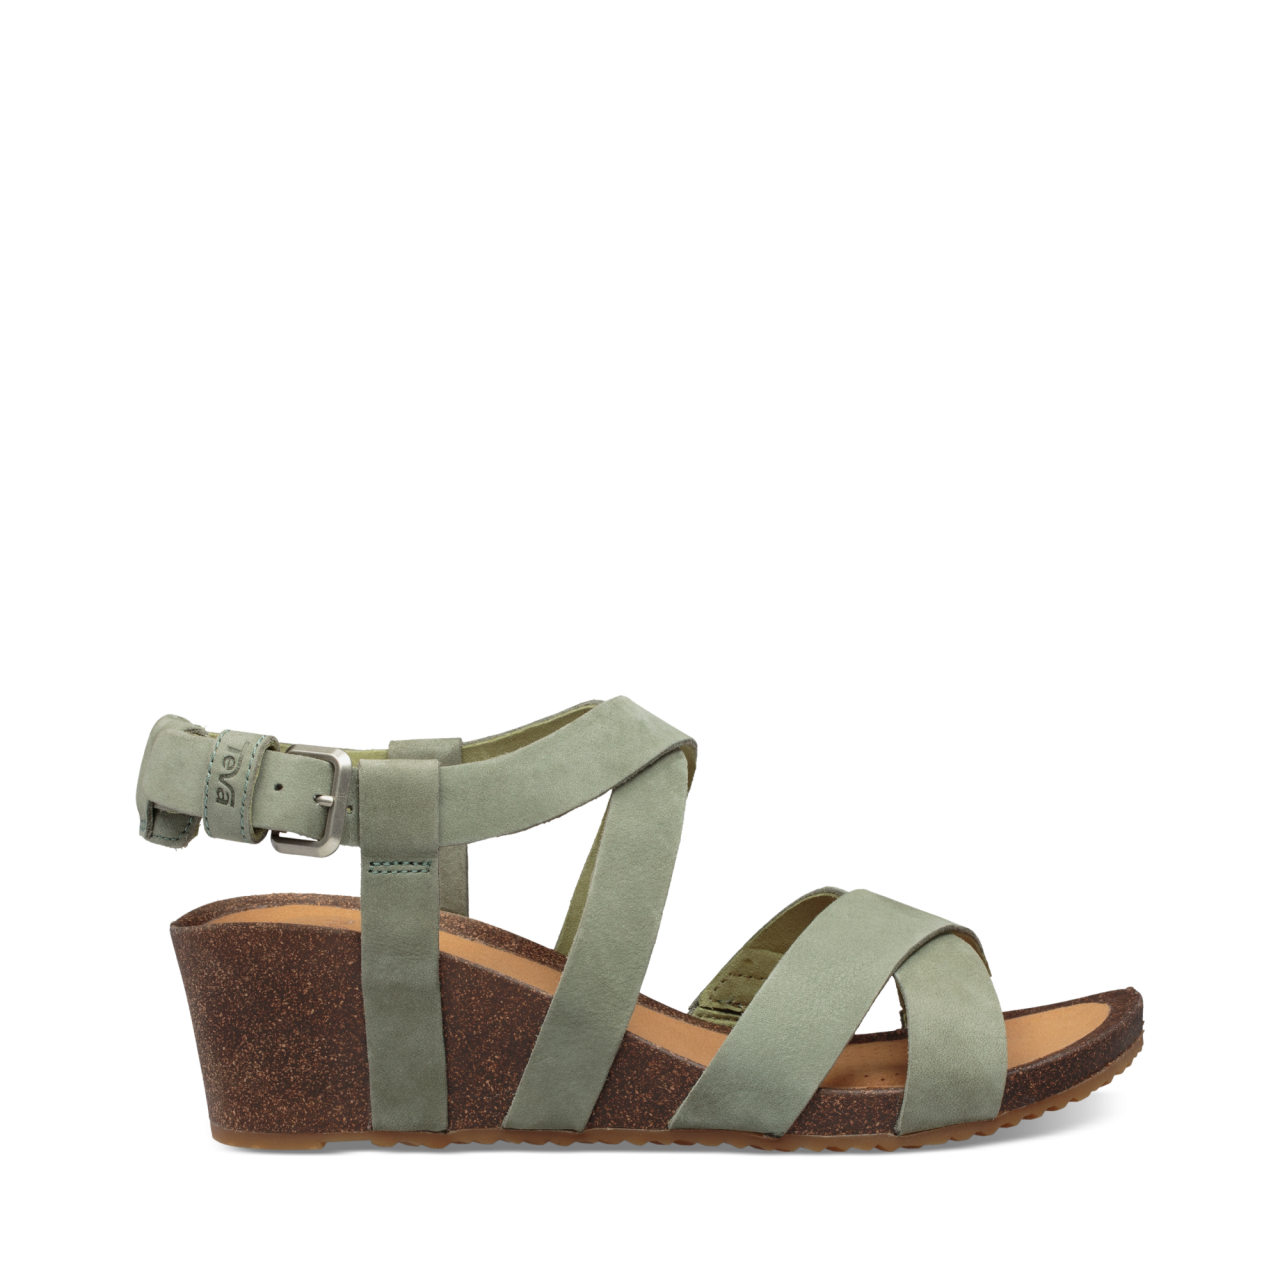 Teva Mahonia Wedge Cross Strap Sandaal Dames Groen